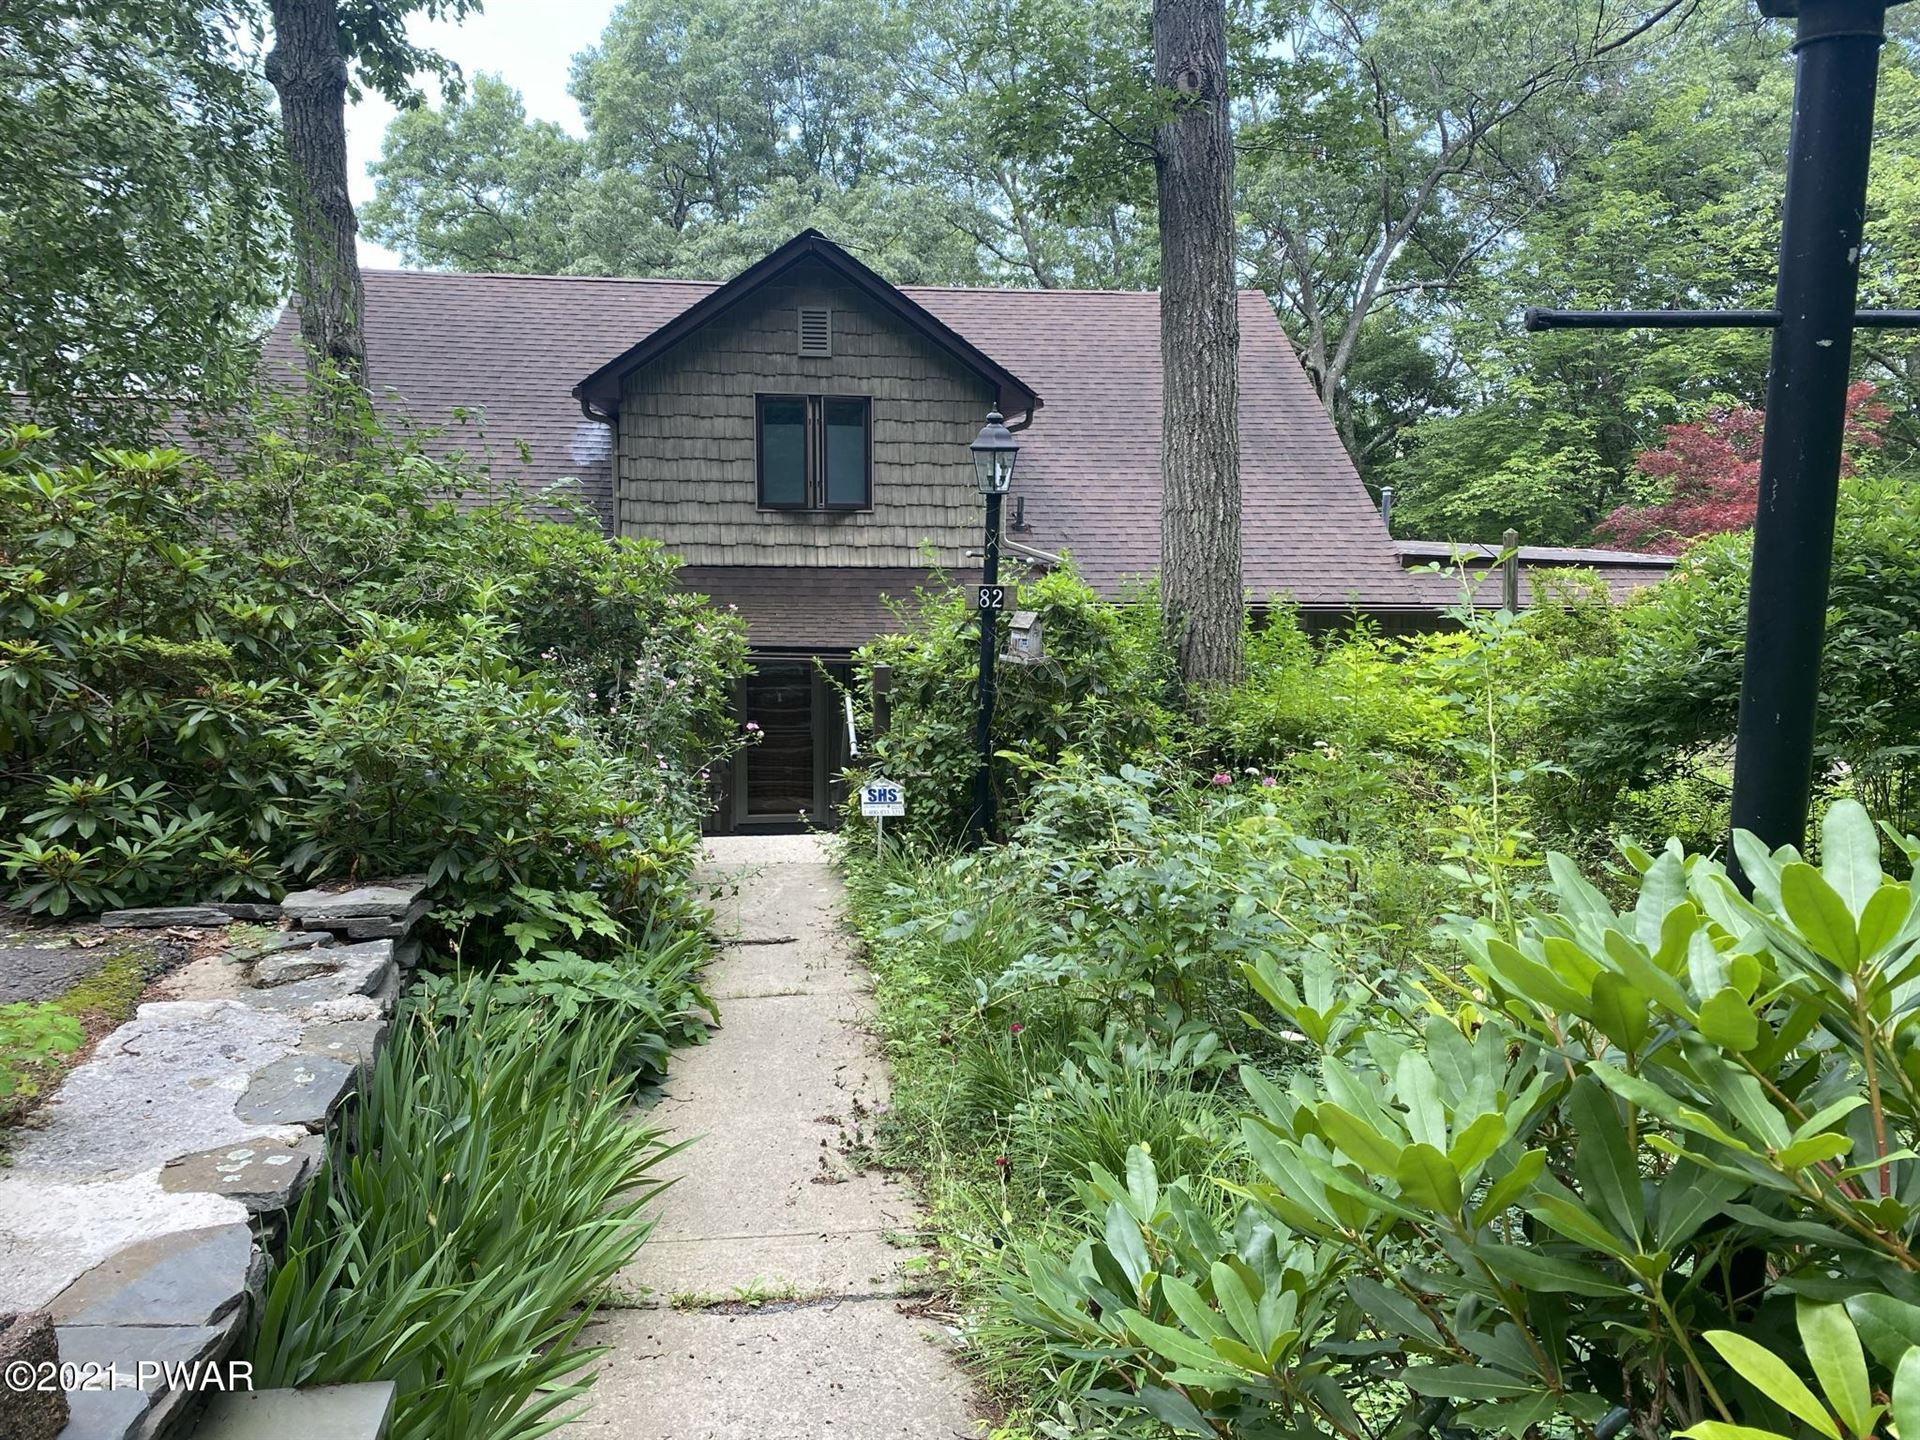 Photo of 82 Paupack Point Rd, Hawley, PA 18428 (MLS # 21-2778)